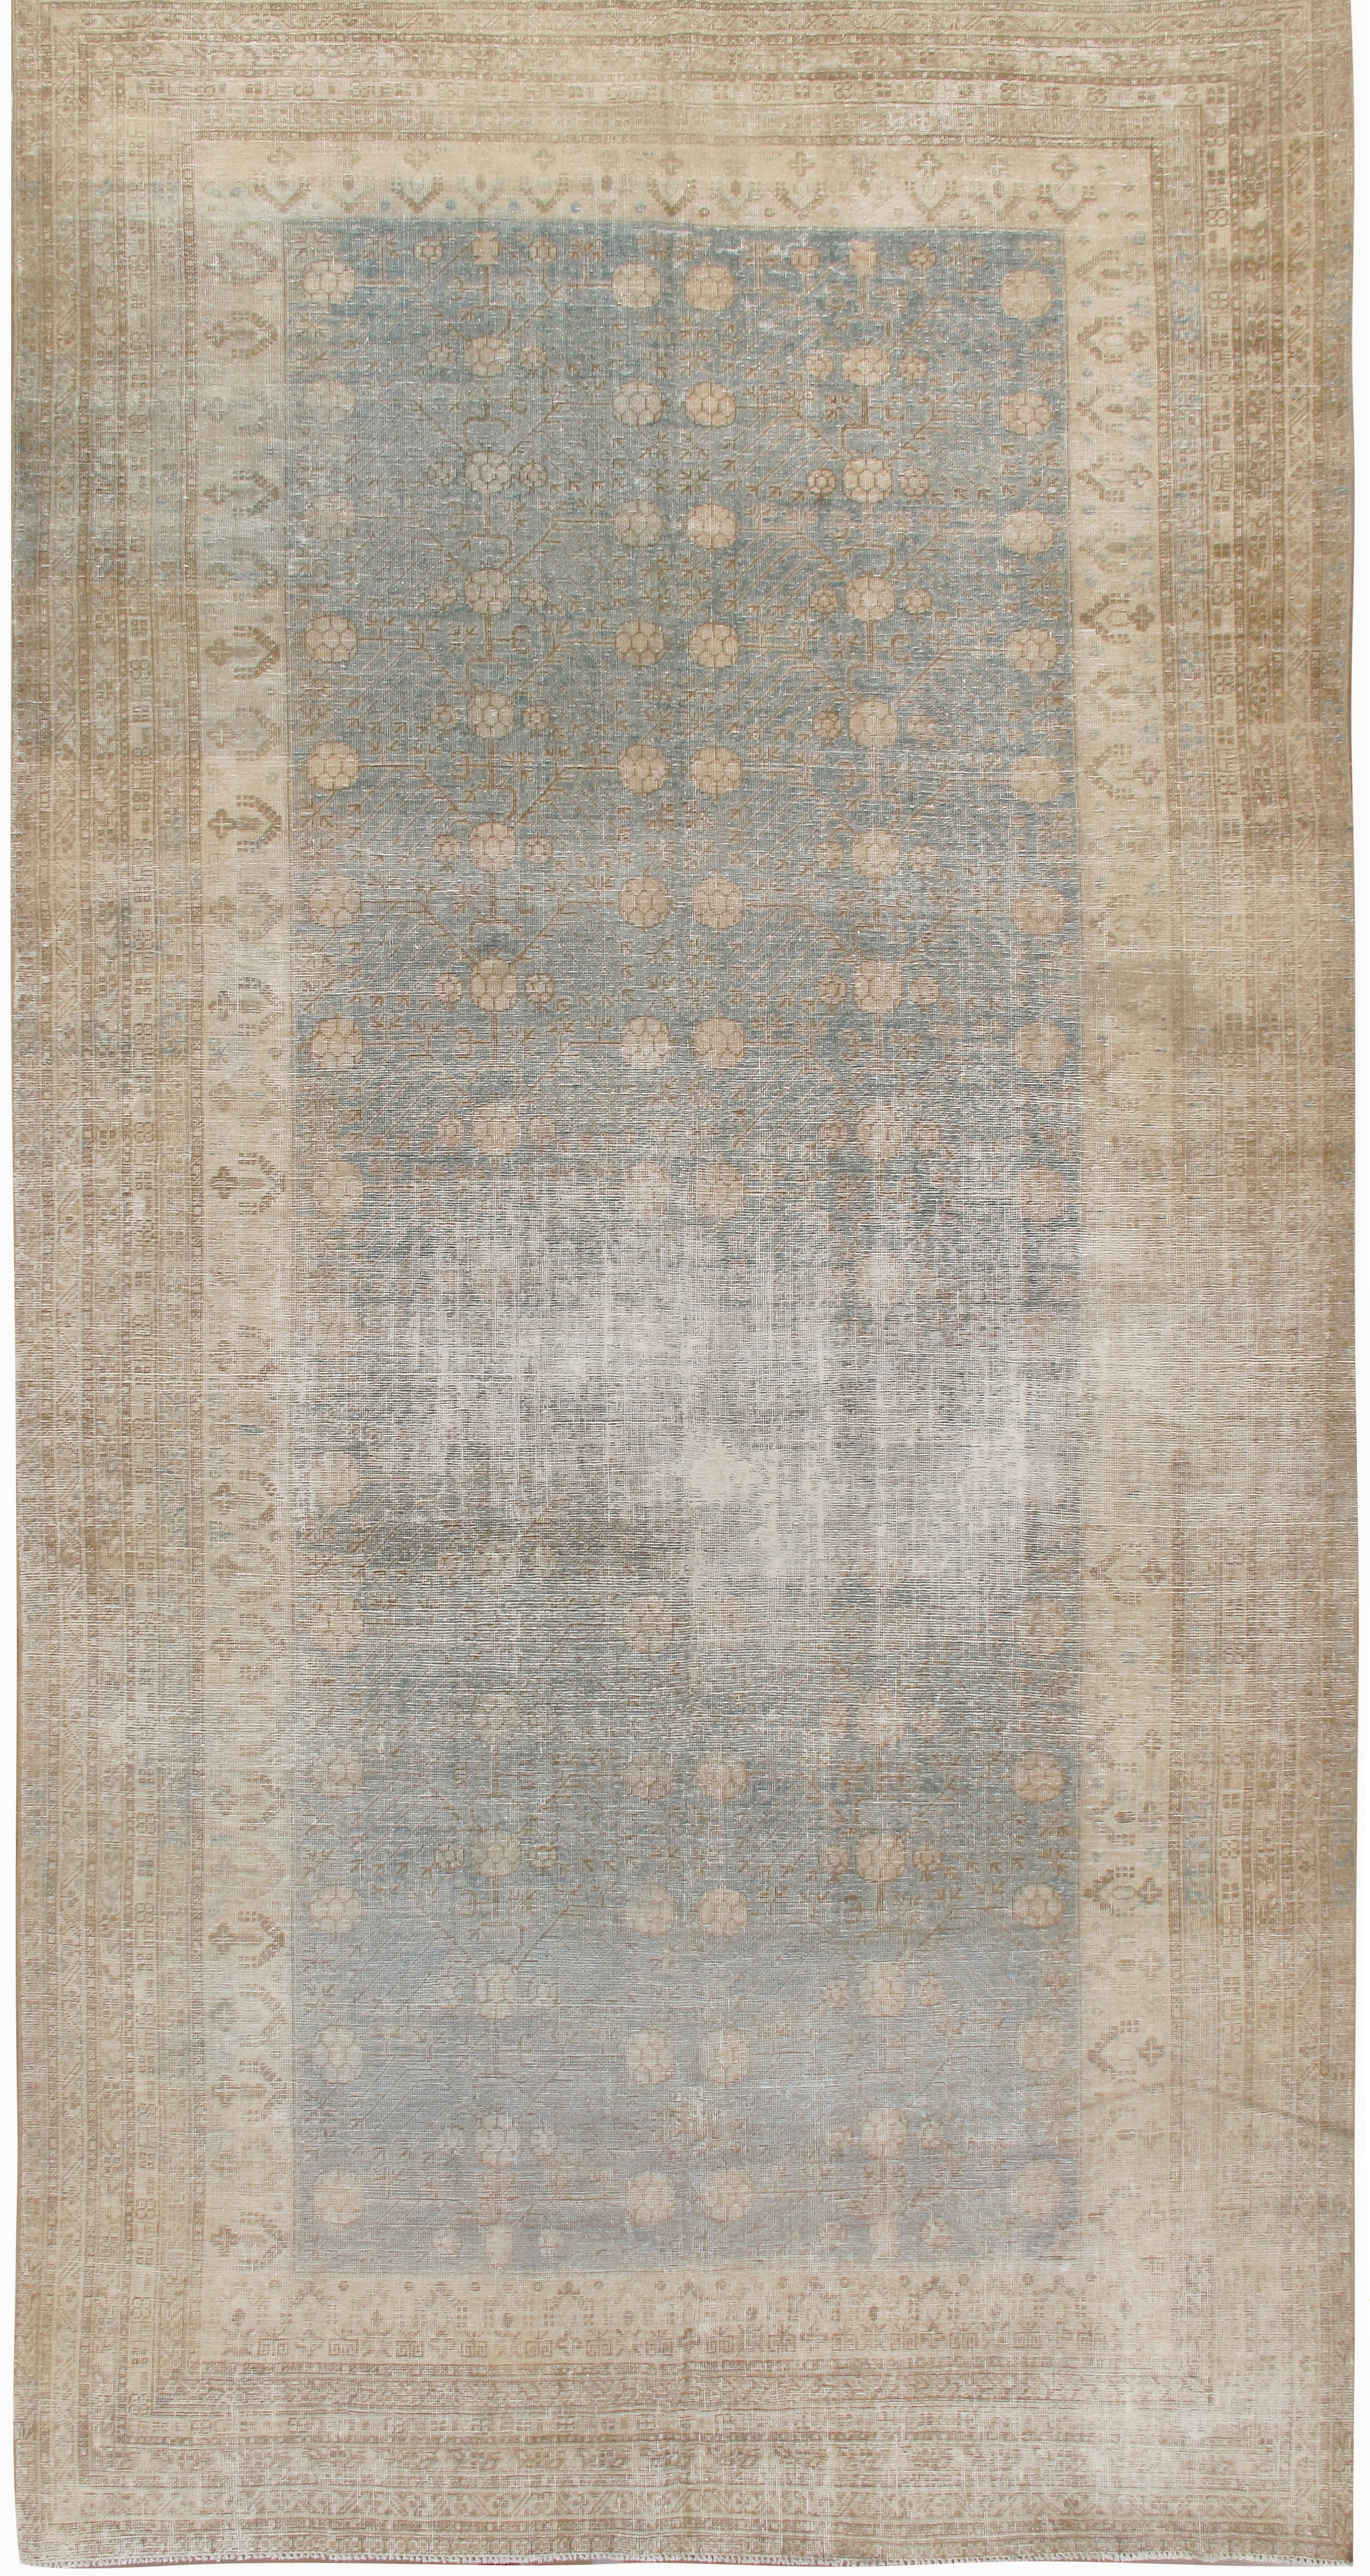 Antique Distressed Khotan